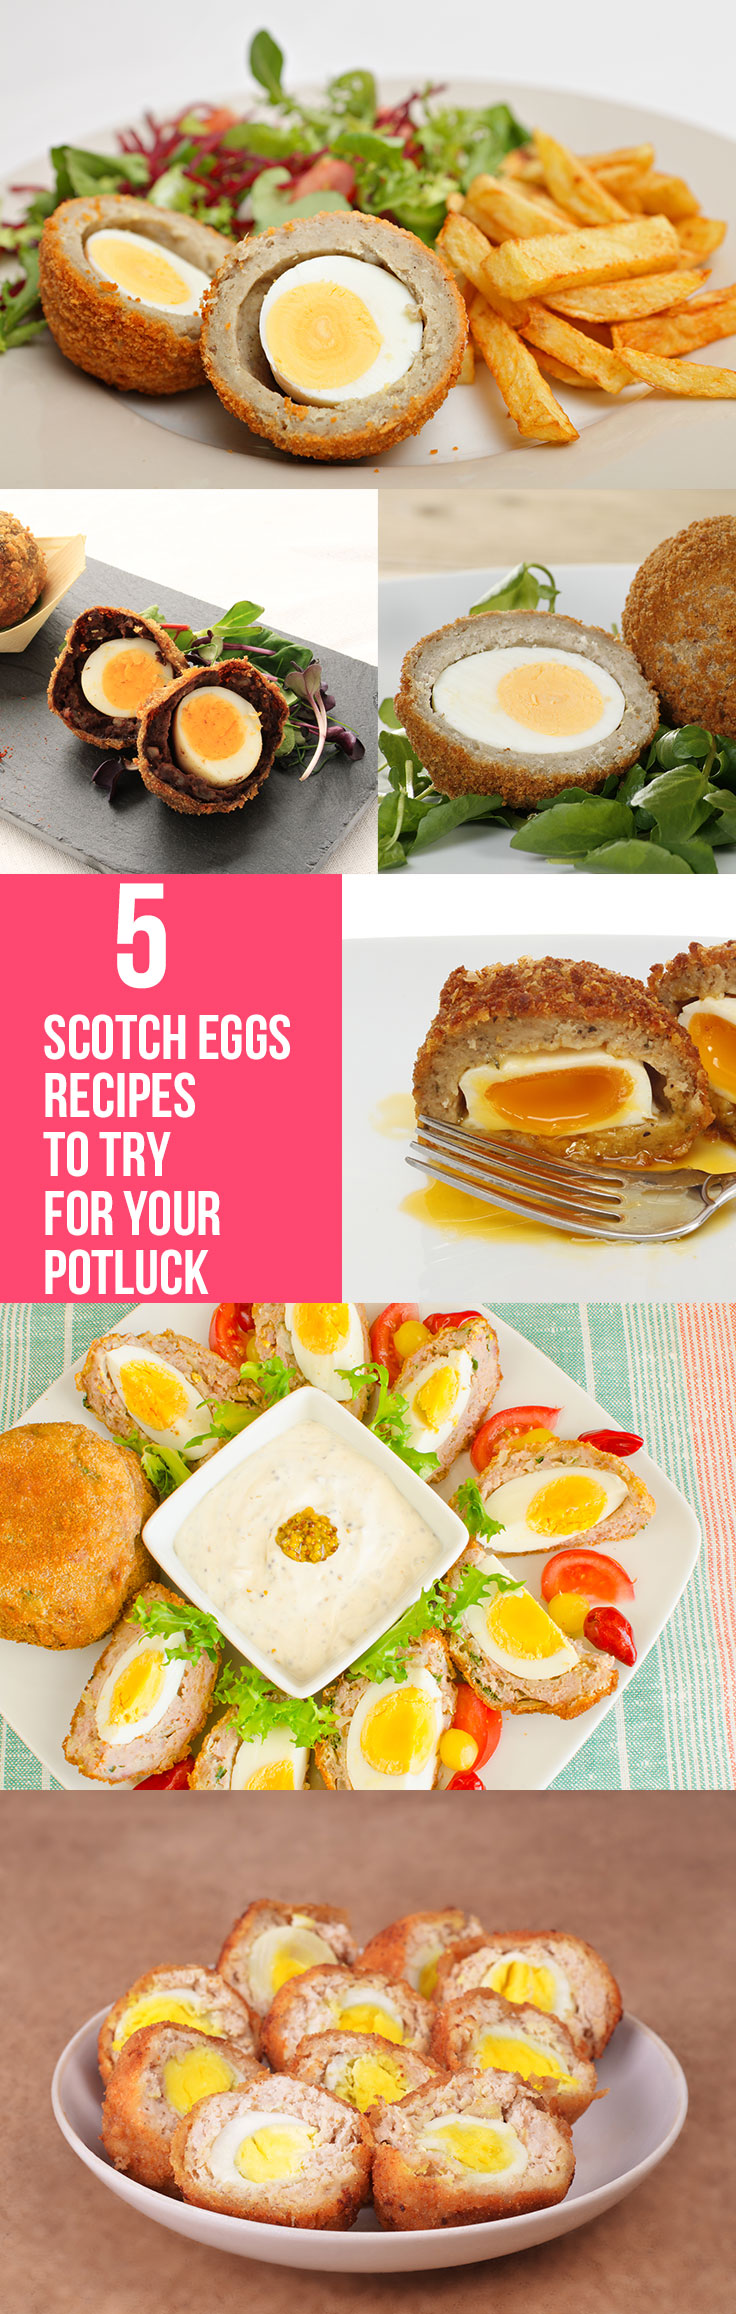 Top 5 Scotch Egg Recipes To Try For Your Potluck